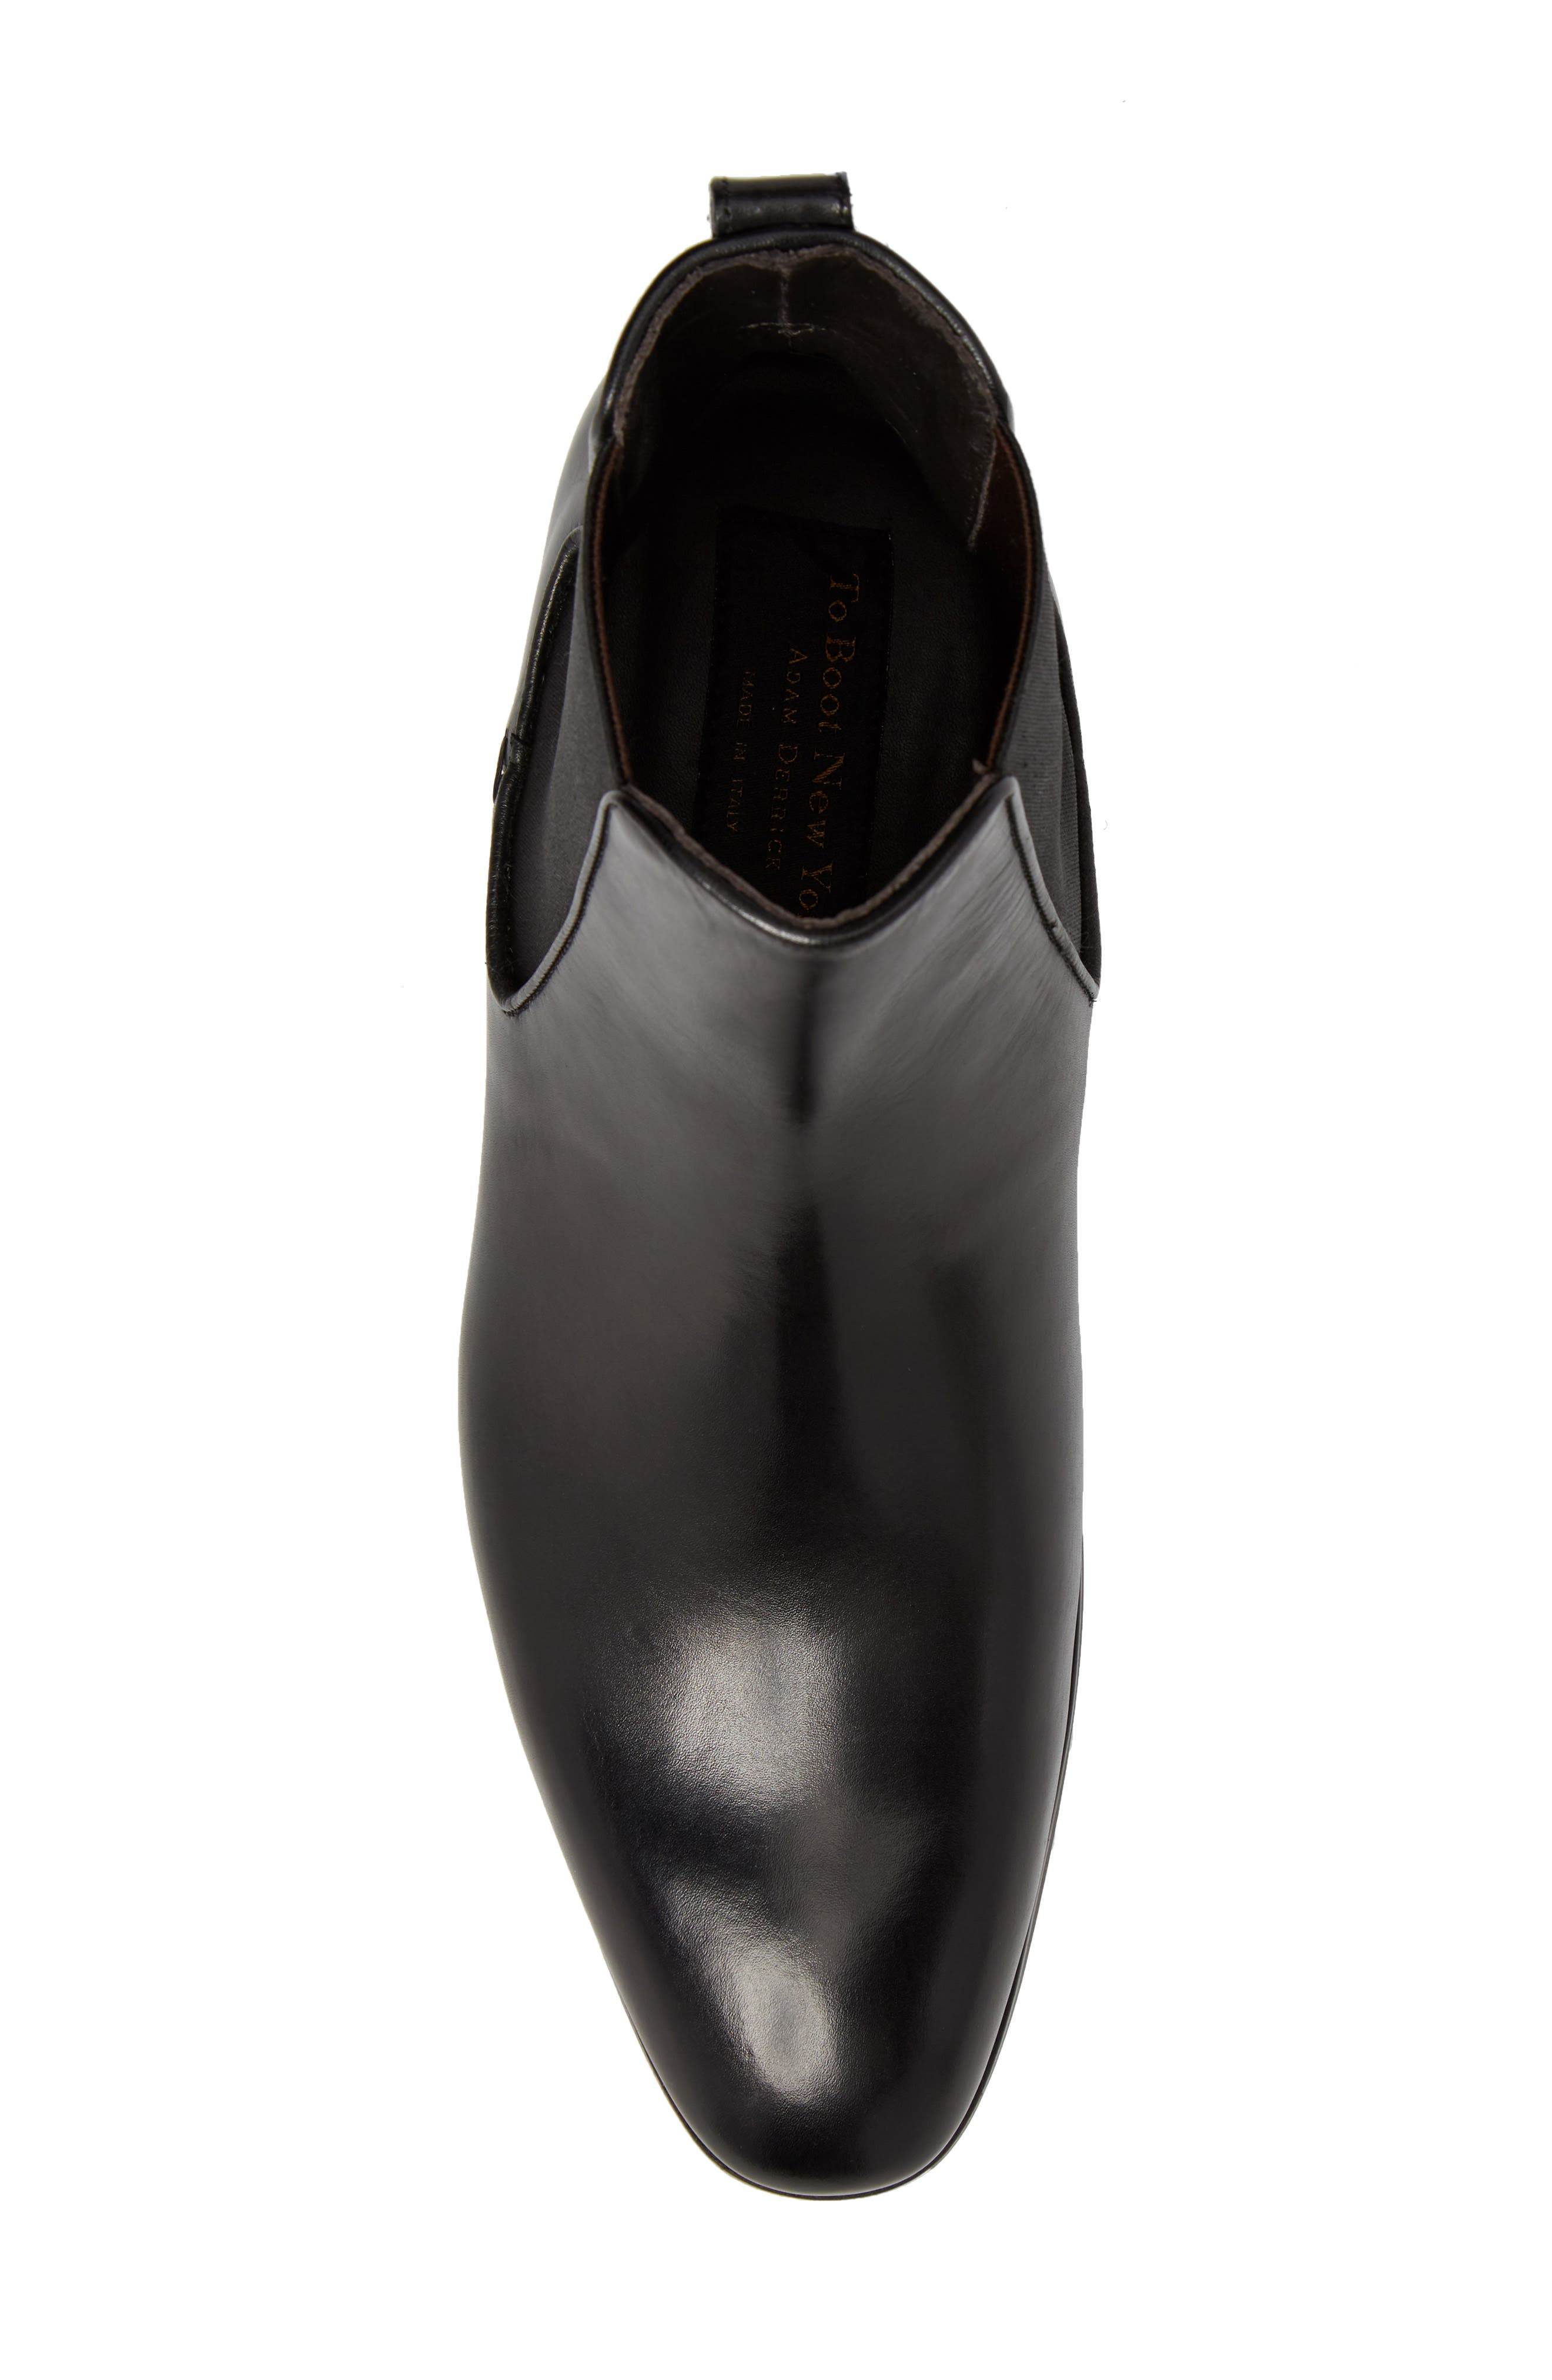 TO BOOT NEW YORK, Aldrich Mid Chelsea Boot, Alternate thumbnail 5, color, BLACK/ BLACK LEATHER